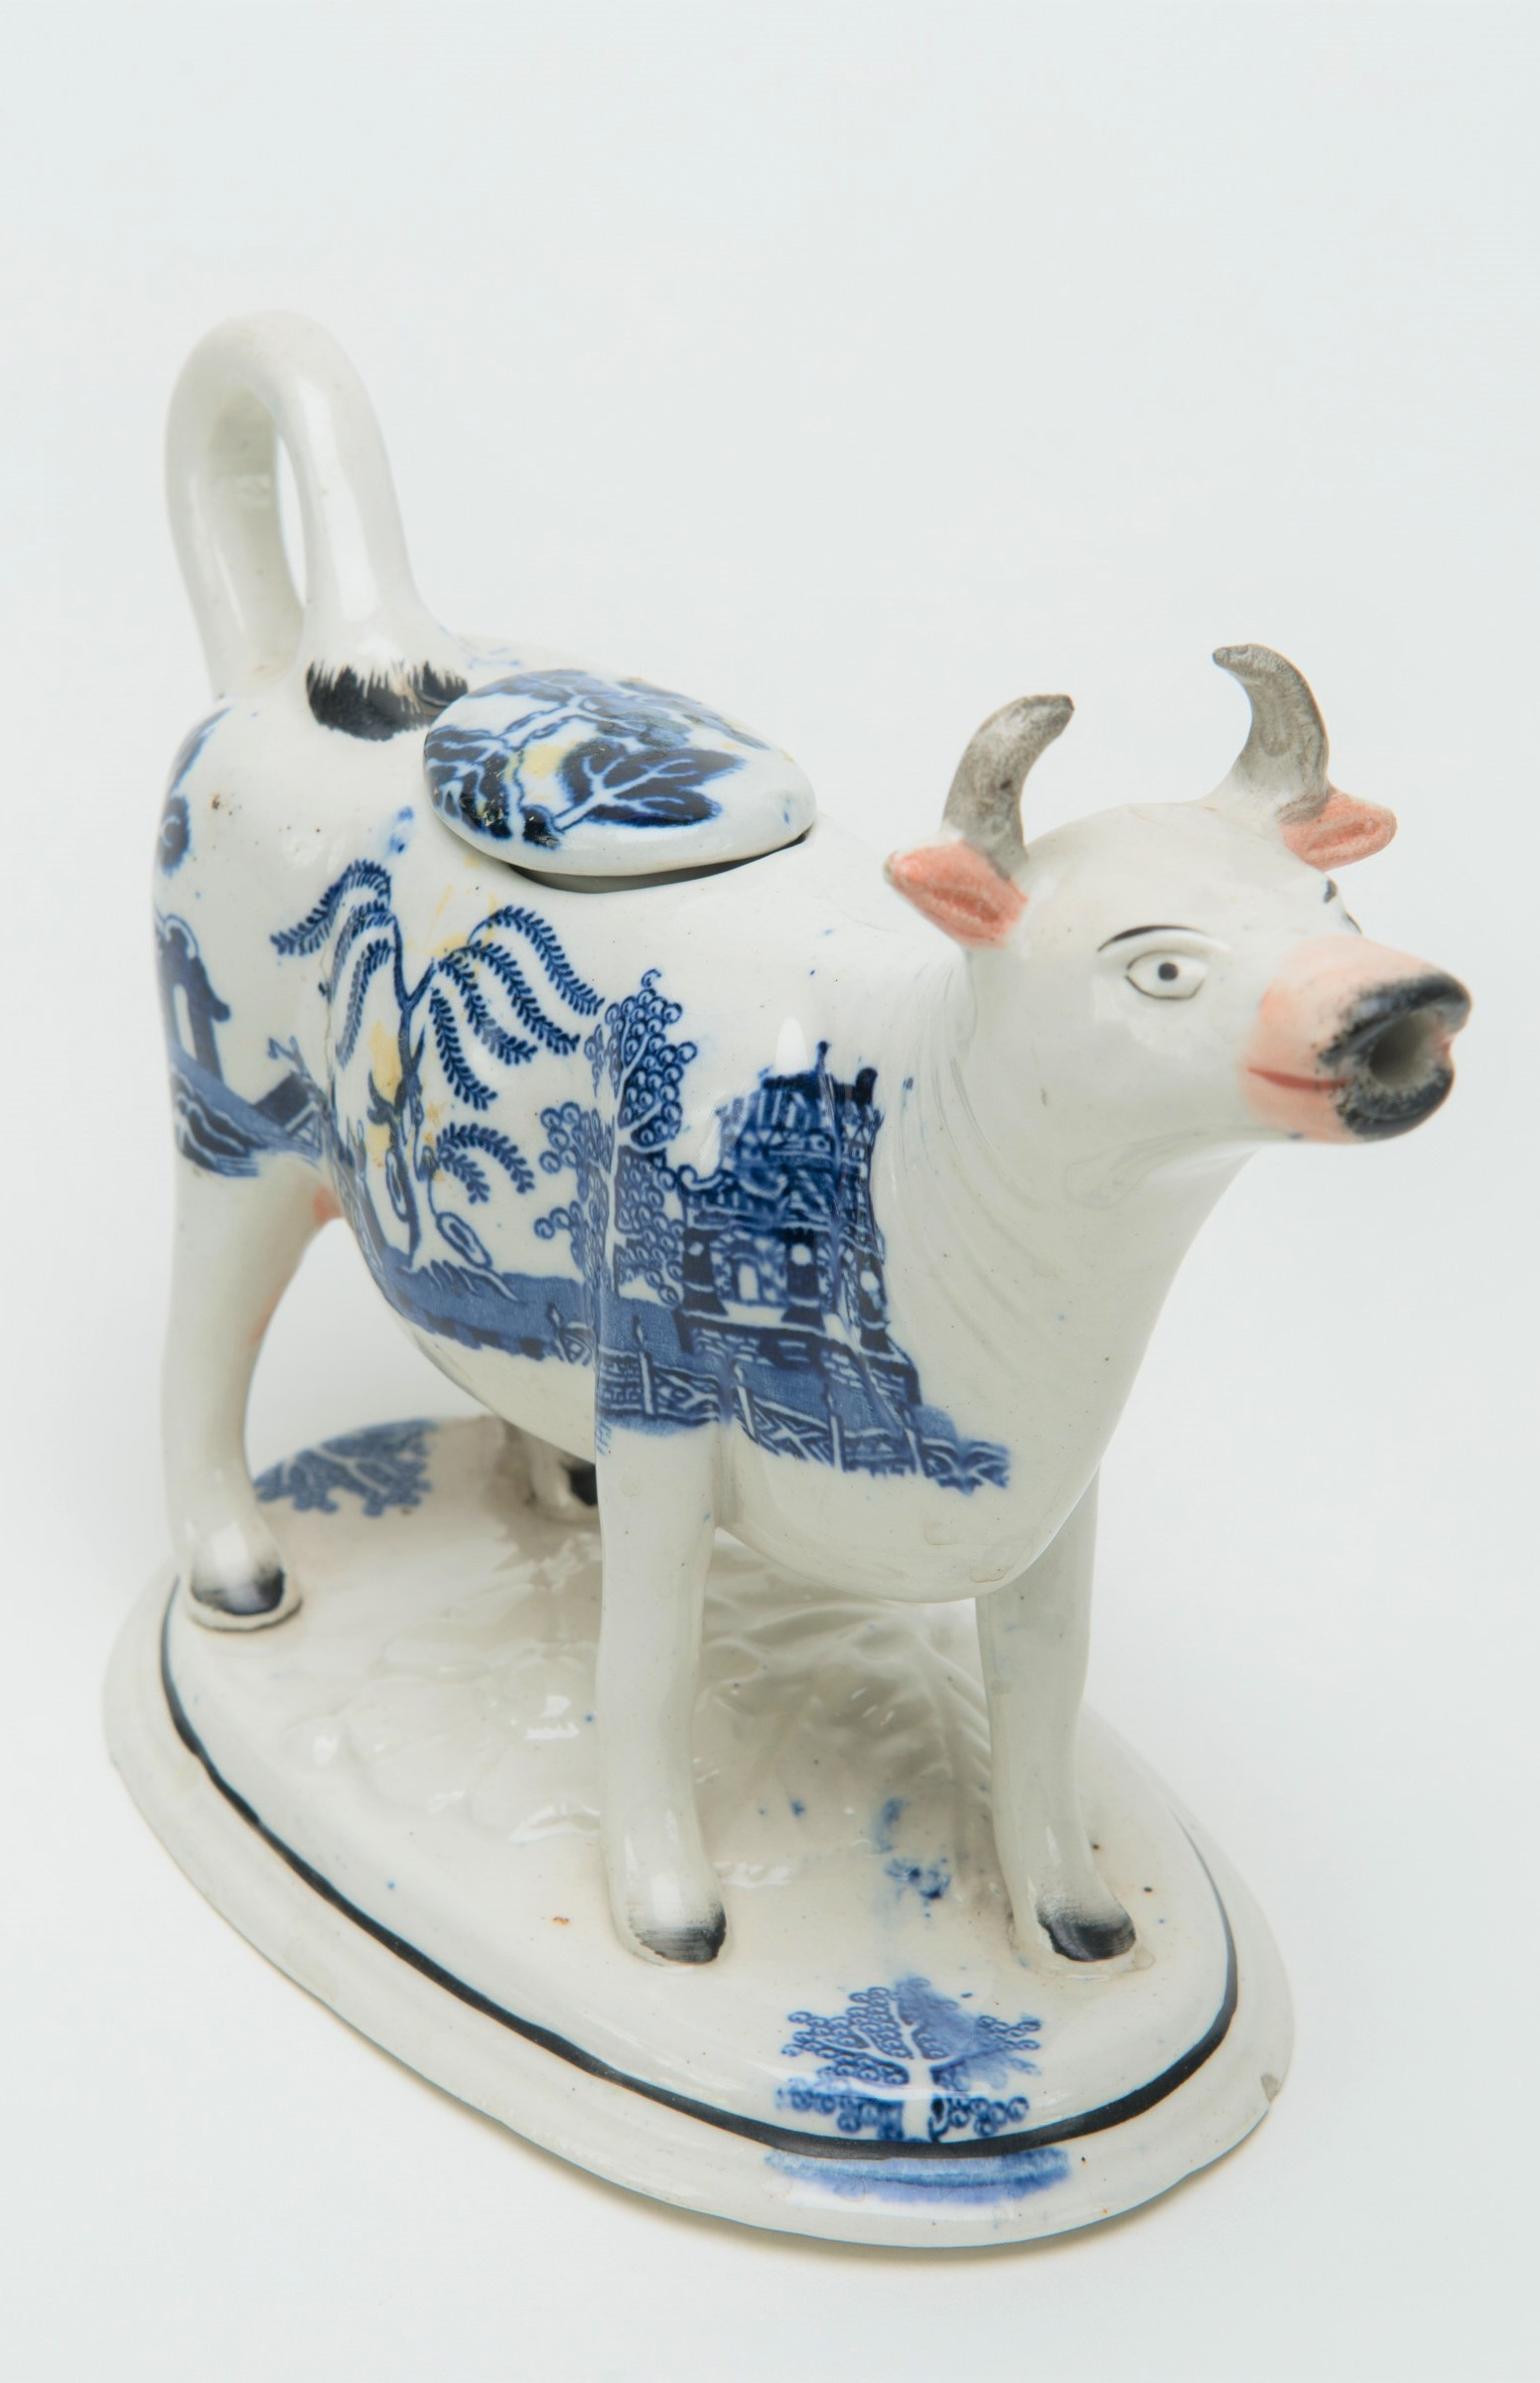 Cow Creamer, Staffordshire, c. 1790. Earthenware with blue transfer decoration. Permanent Collection, Chapel Art Center.